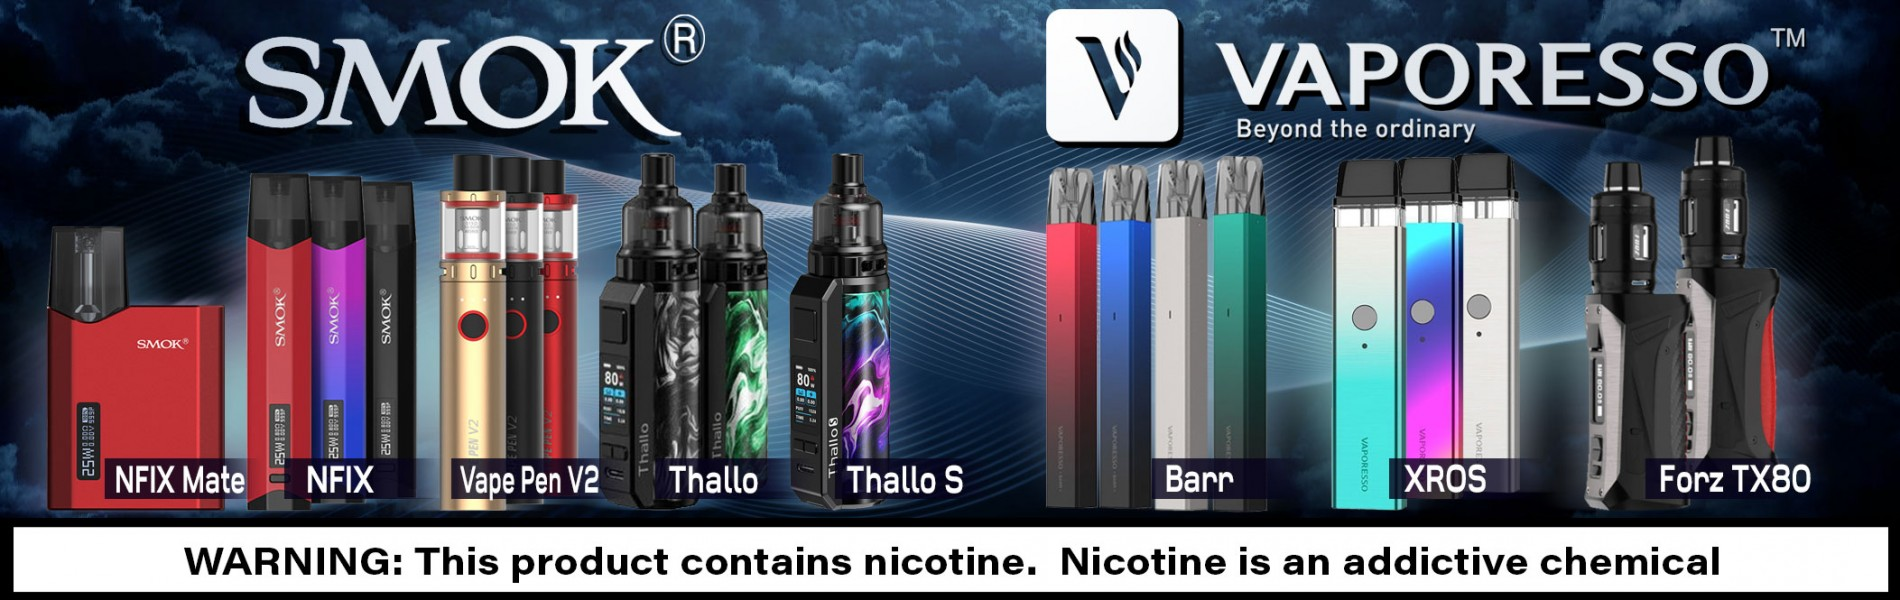 New Pod Kits and Hardware from Smok and Vaporesso